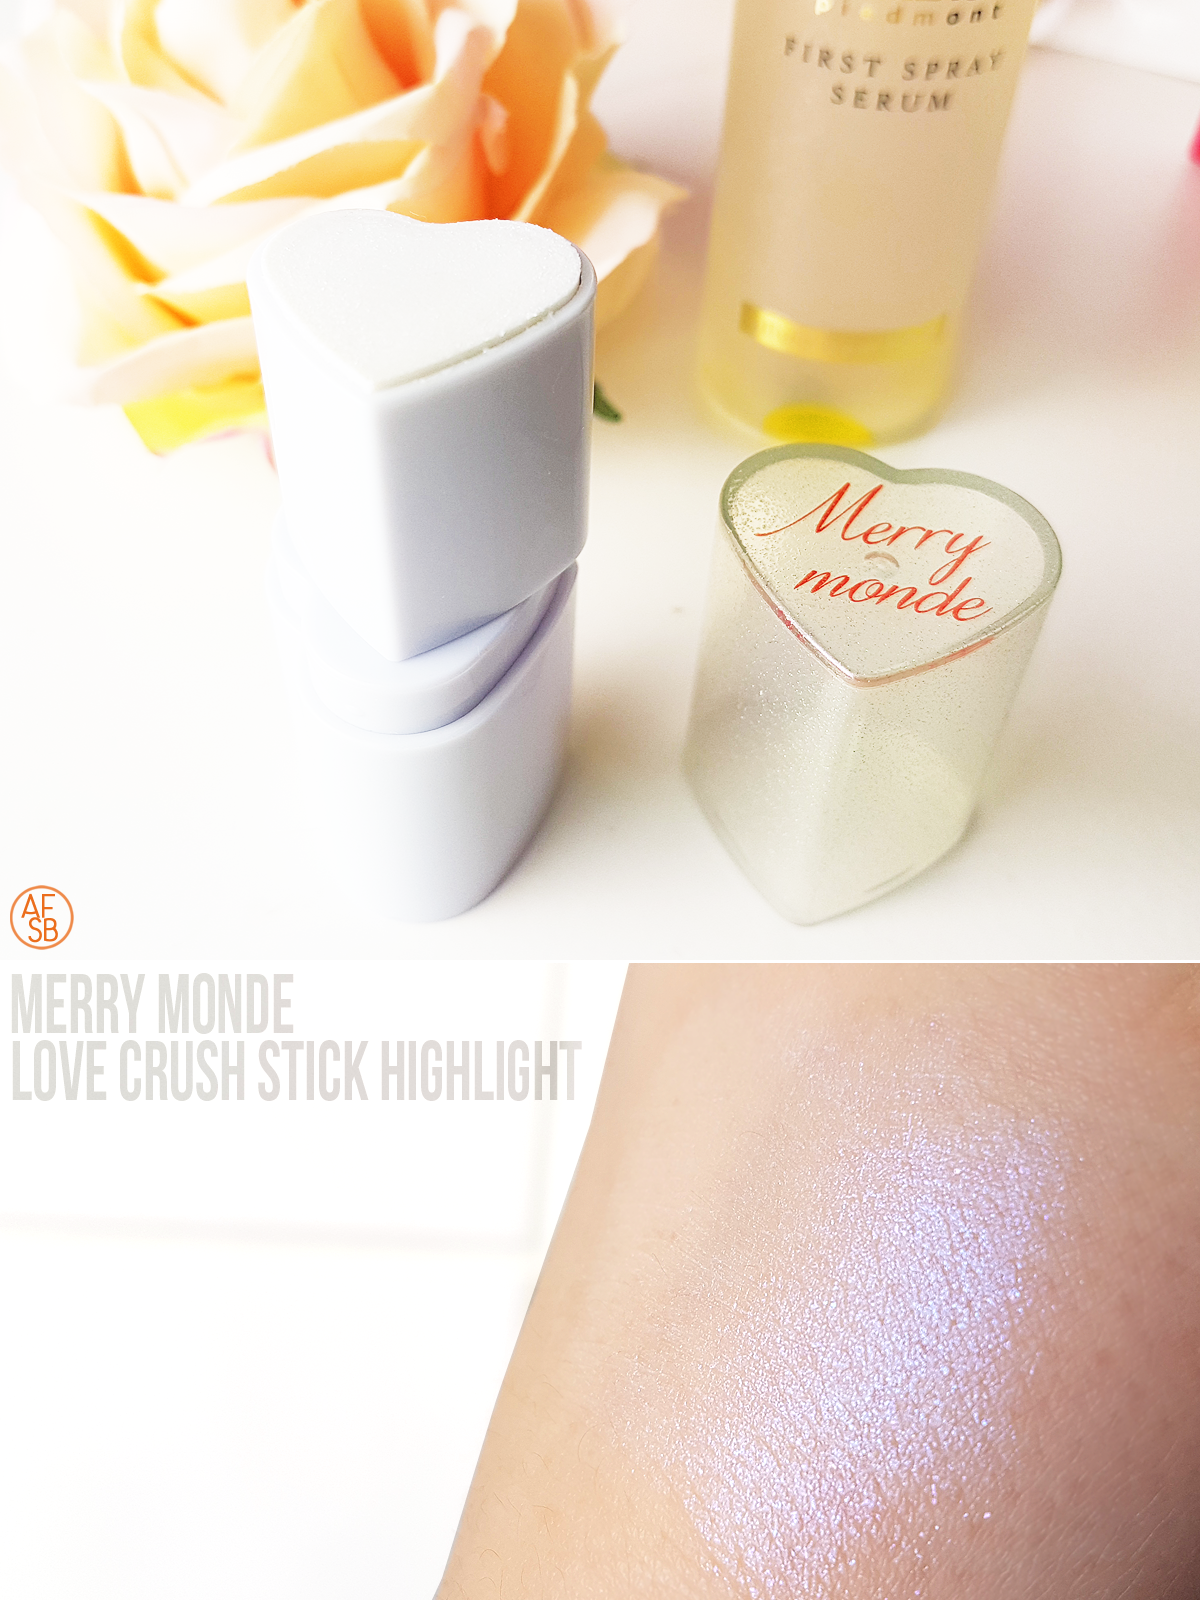 Merry Monde - Love Crush Stick Highlight #beautybox #kbeauty